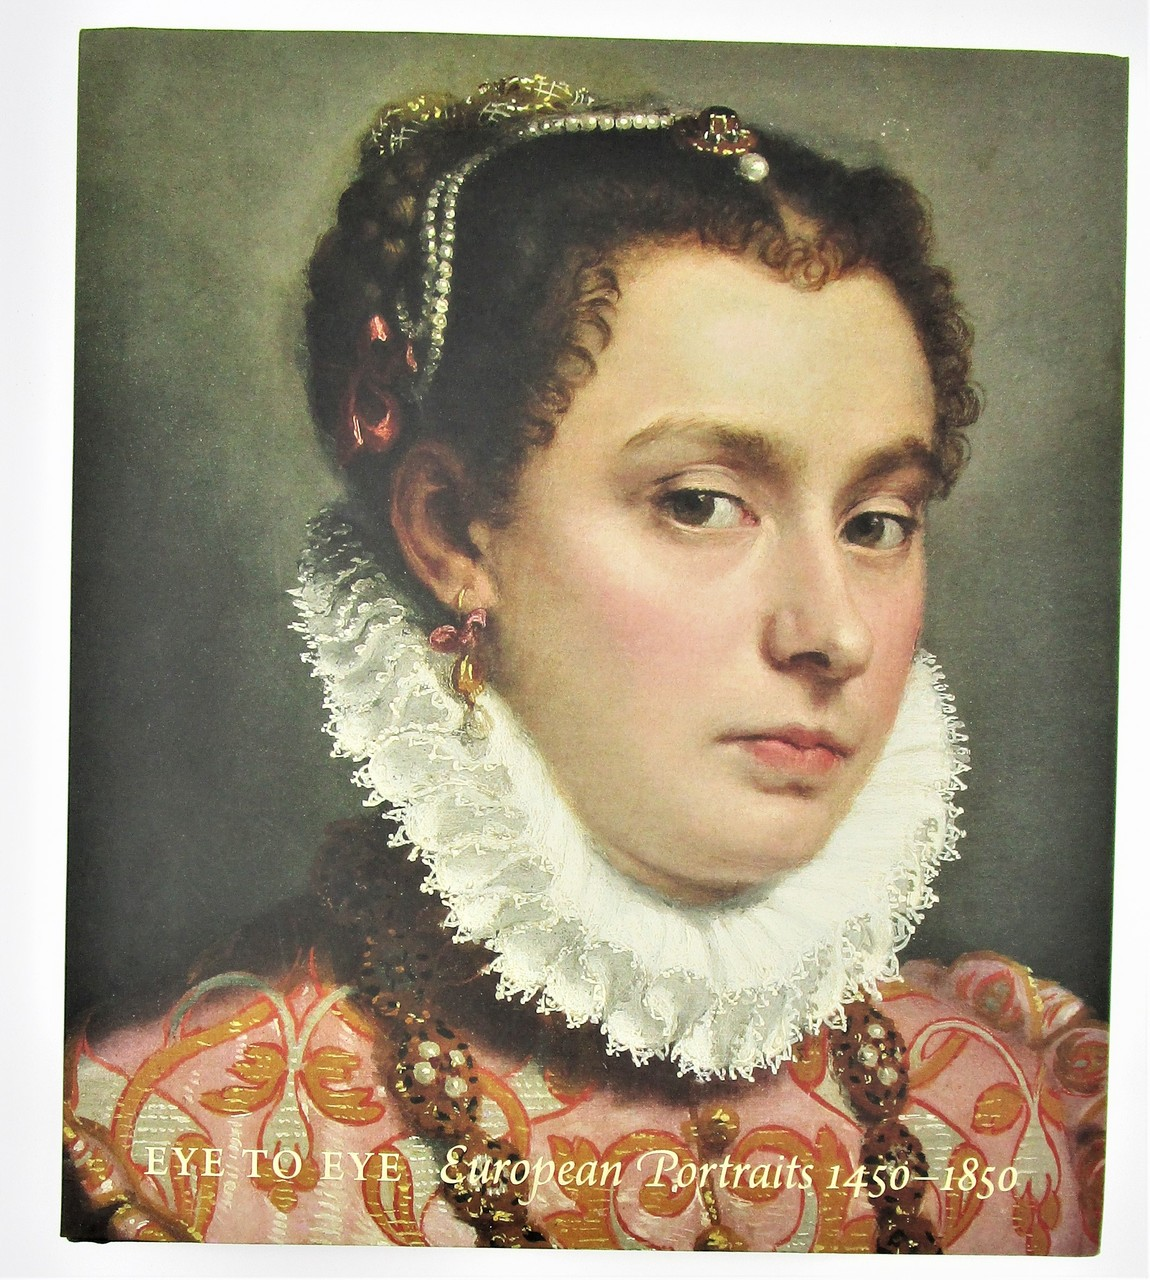 EYE TO EYE: EUROPEAN PORTRAITS 1450-1850, by Rand & Morris - 2011